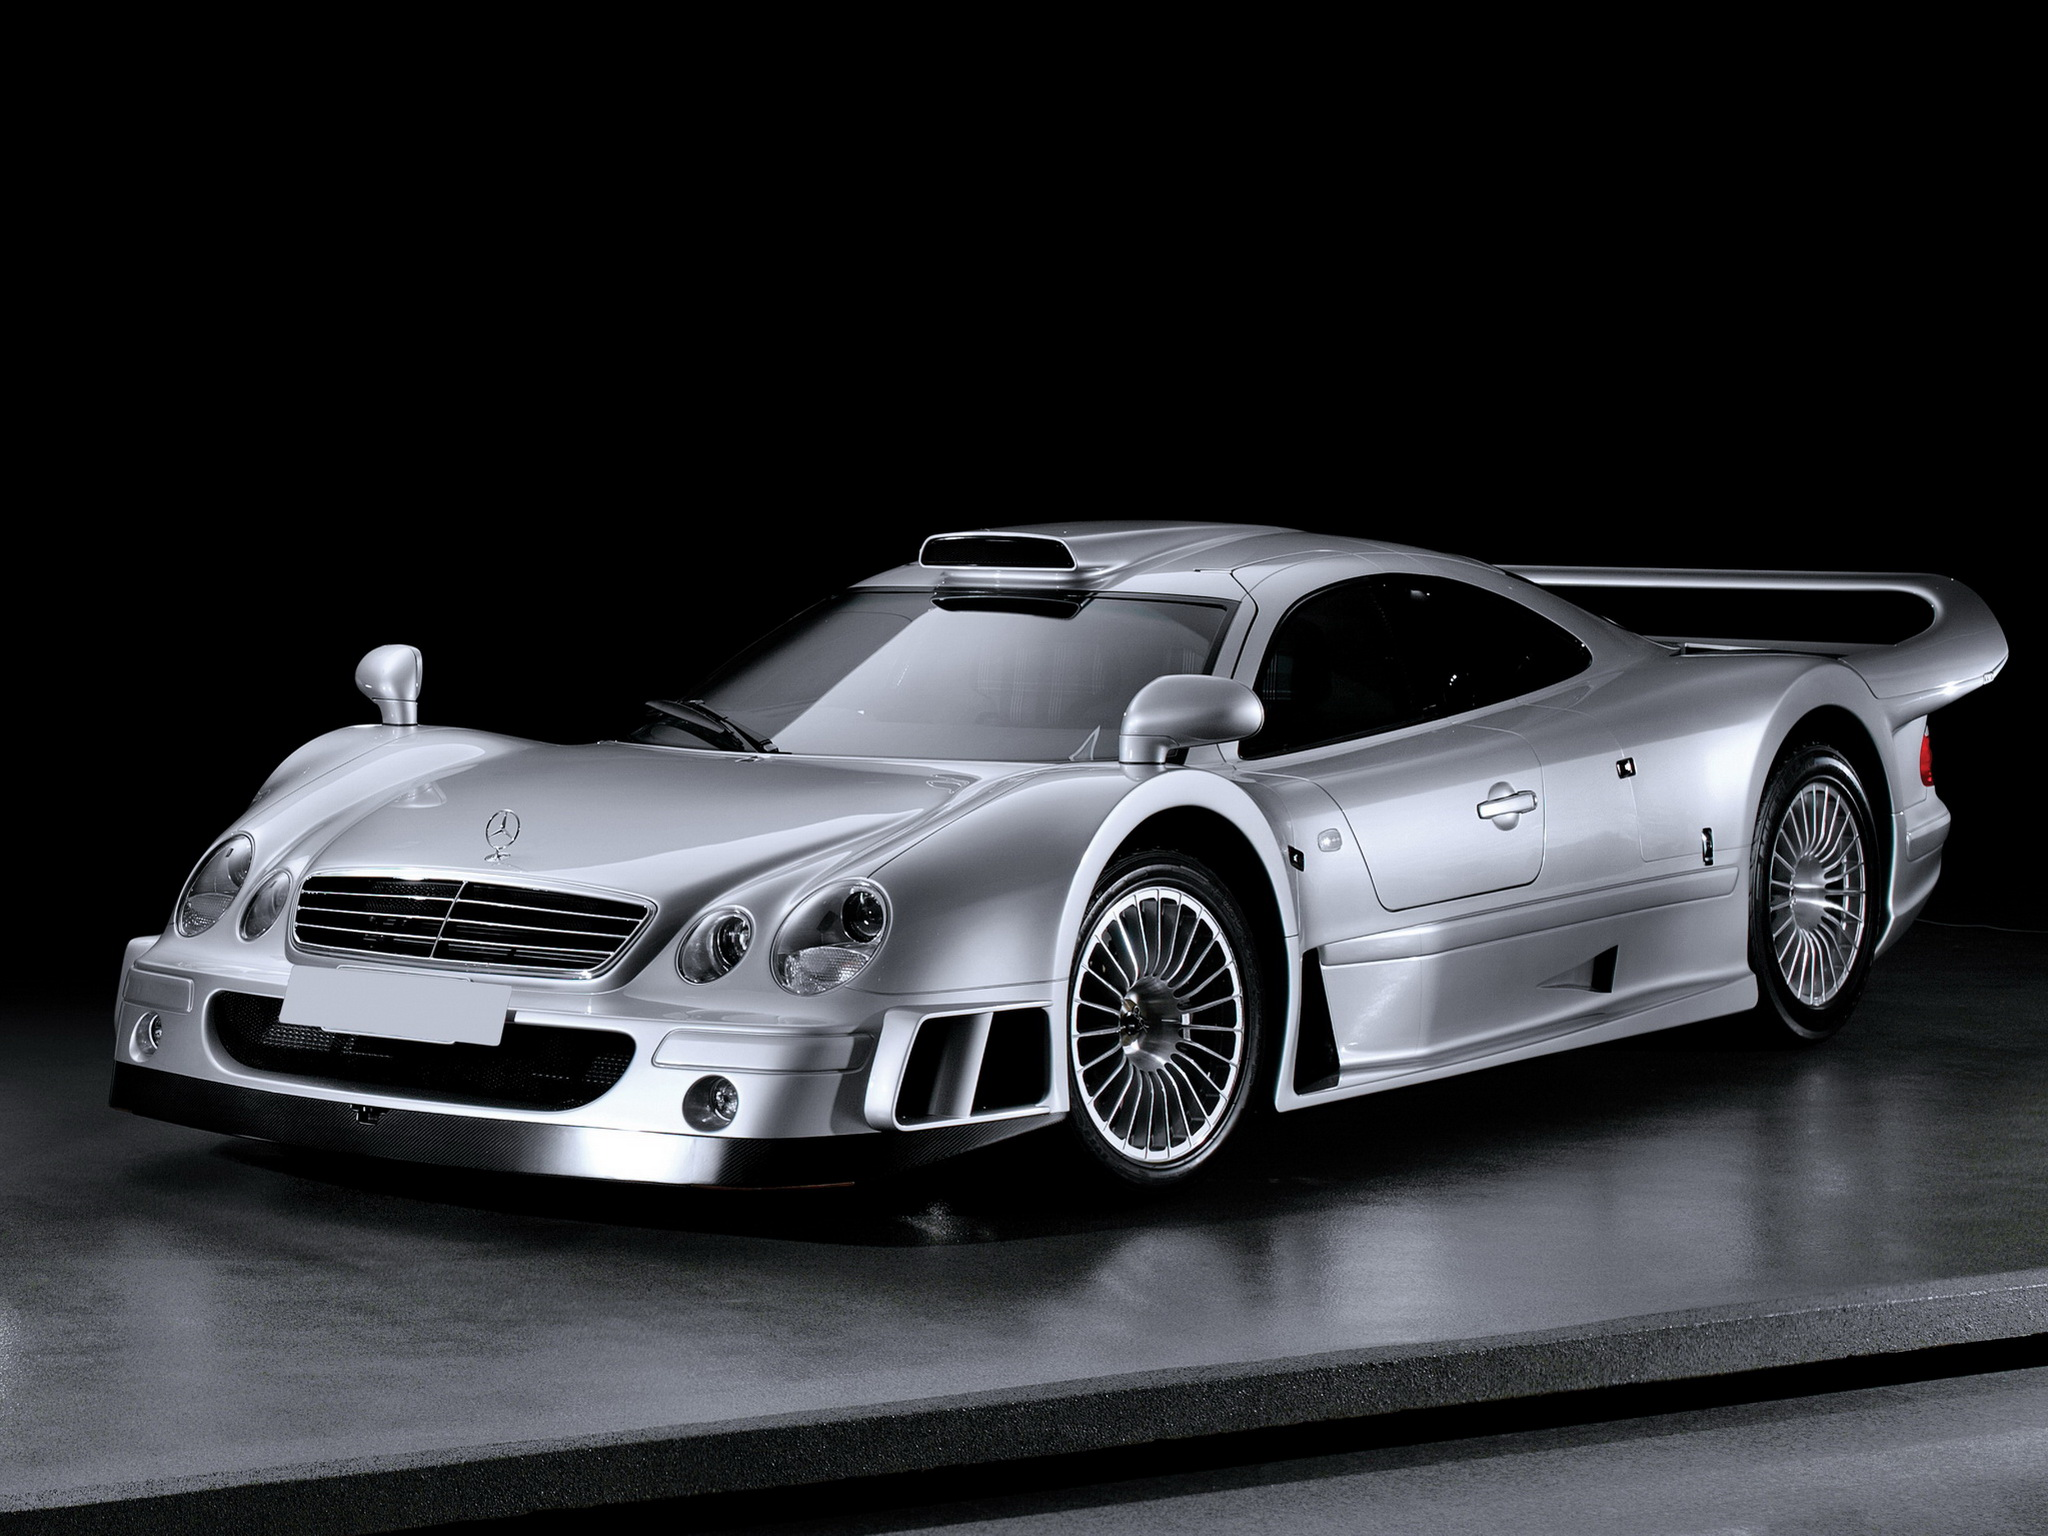 Mercedes Benz Clk Gtr Photos Informations Articles Bestcarmag Com